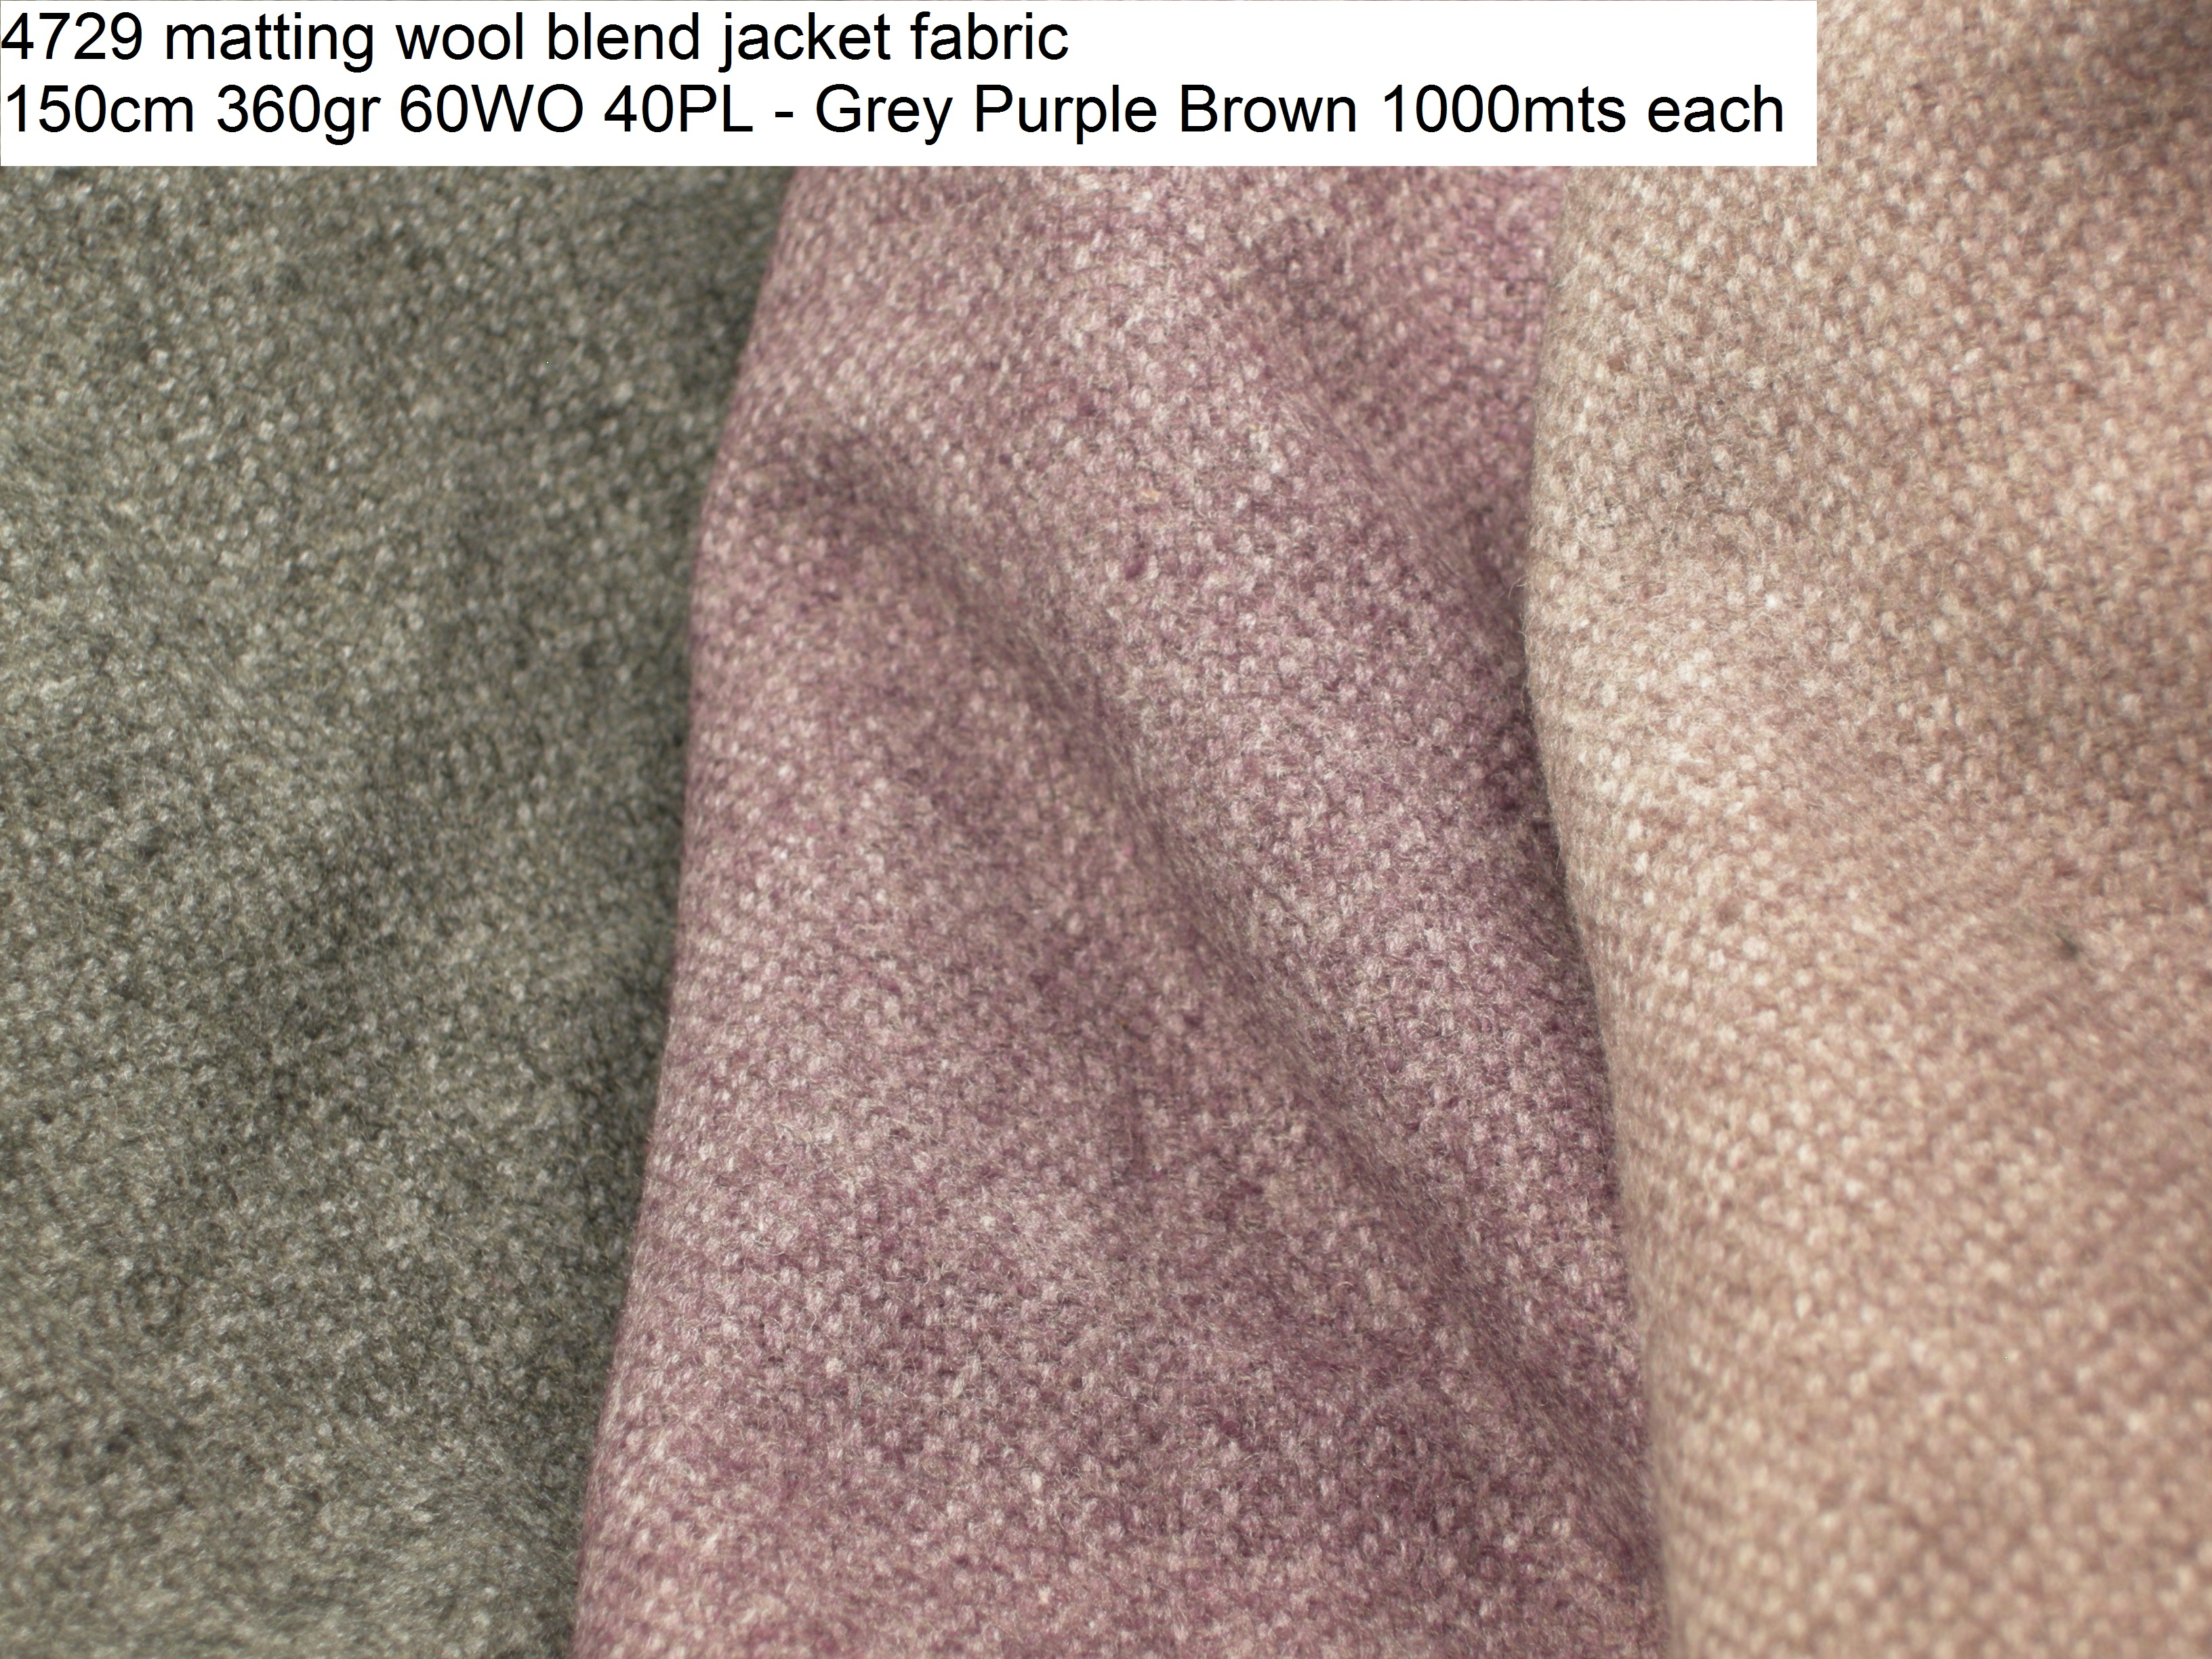 4729 matting wool blend jacket fabric 150cm 360gr 60WO 40PL - Grey Purple Brown 1000mts each